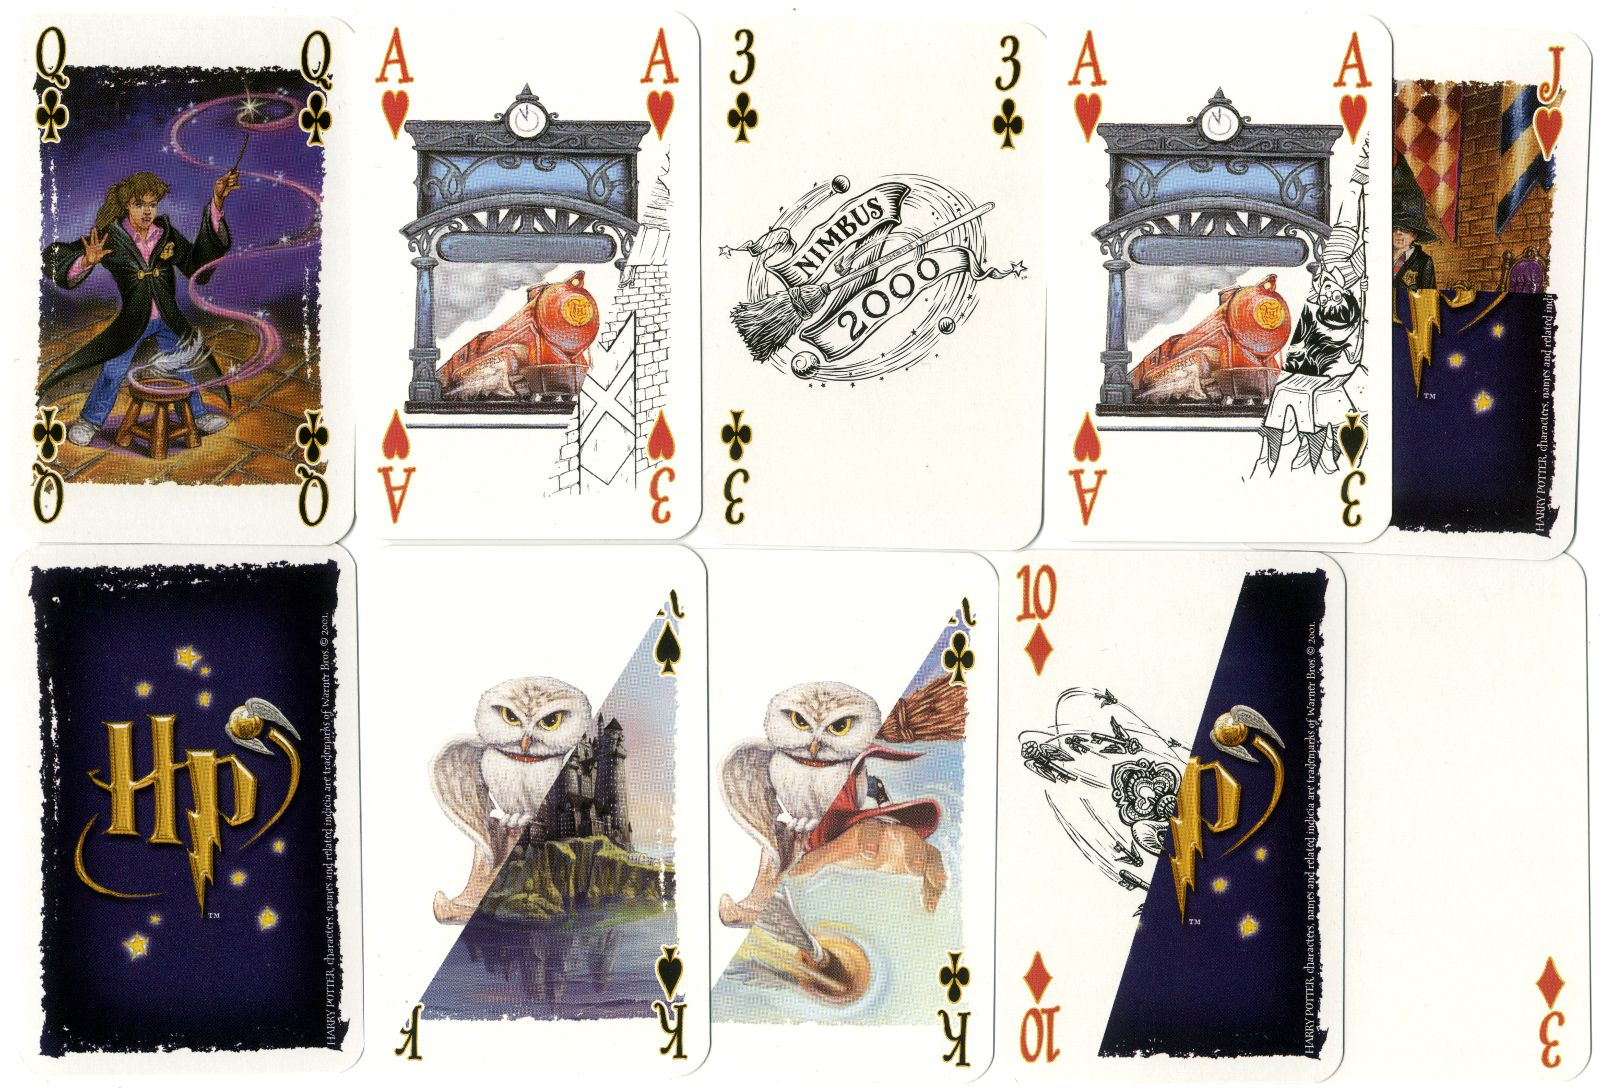 Harry Potter Playing Cards for Magic Tricks, made in Belgium by Carta Mundi